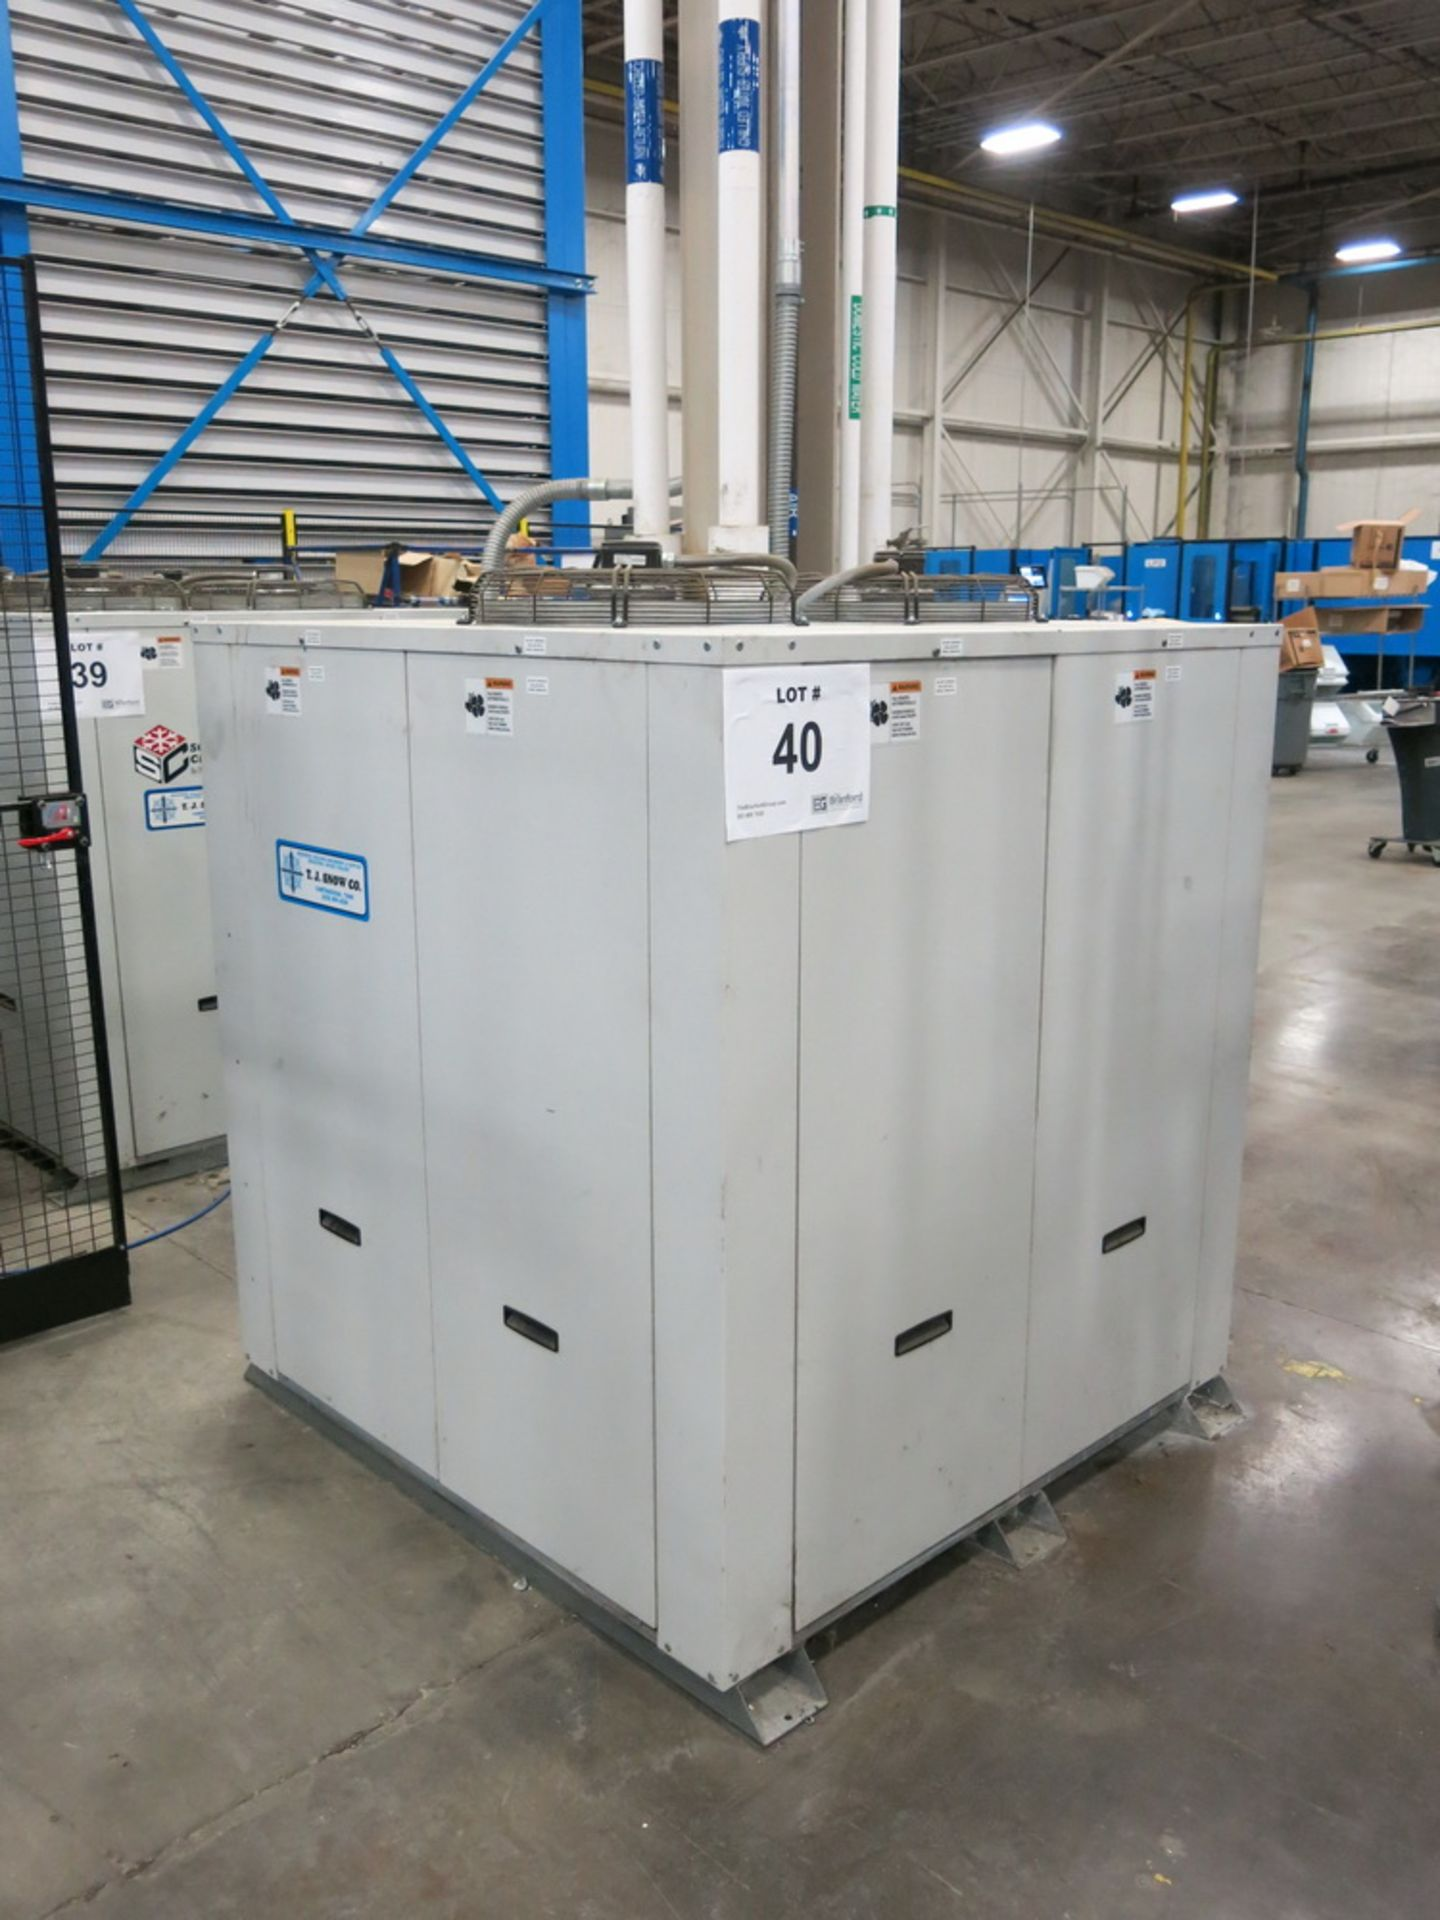 Lot 40 - 2014 Schreiber Dimplex Chiller Model SVI-15000-M, (2) 7.5 HP Compressors, (2) 3 HP Chiller Pumps